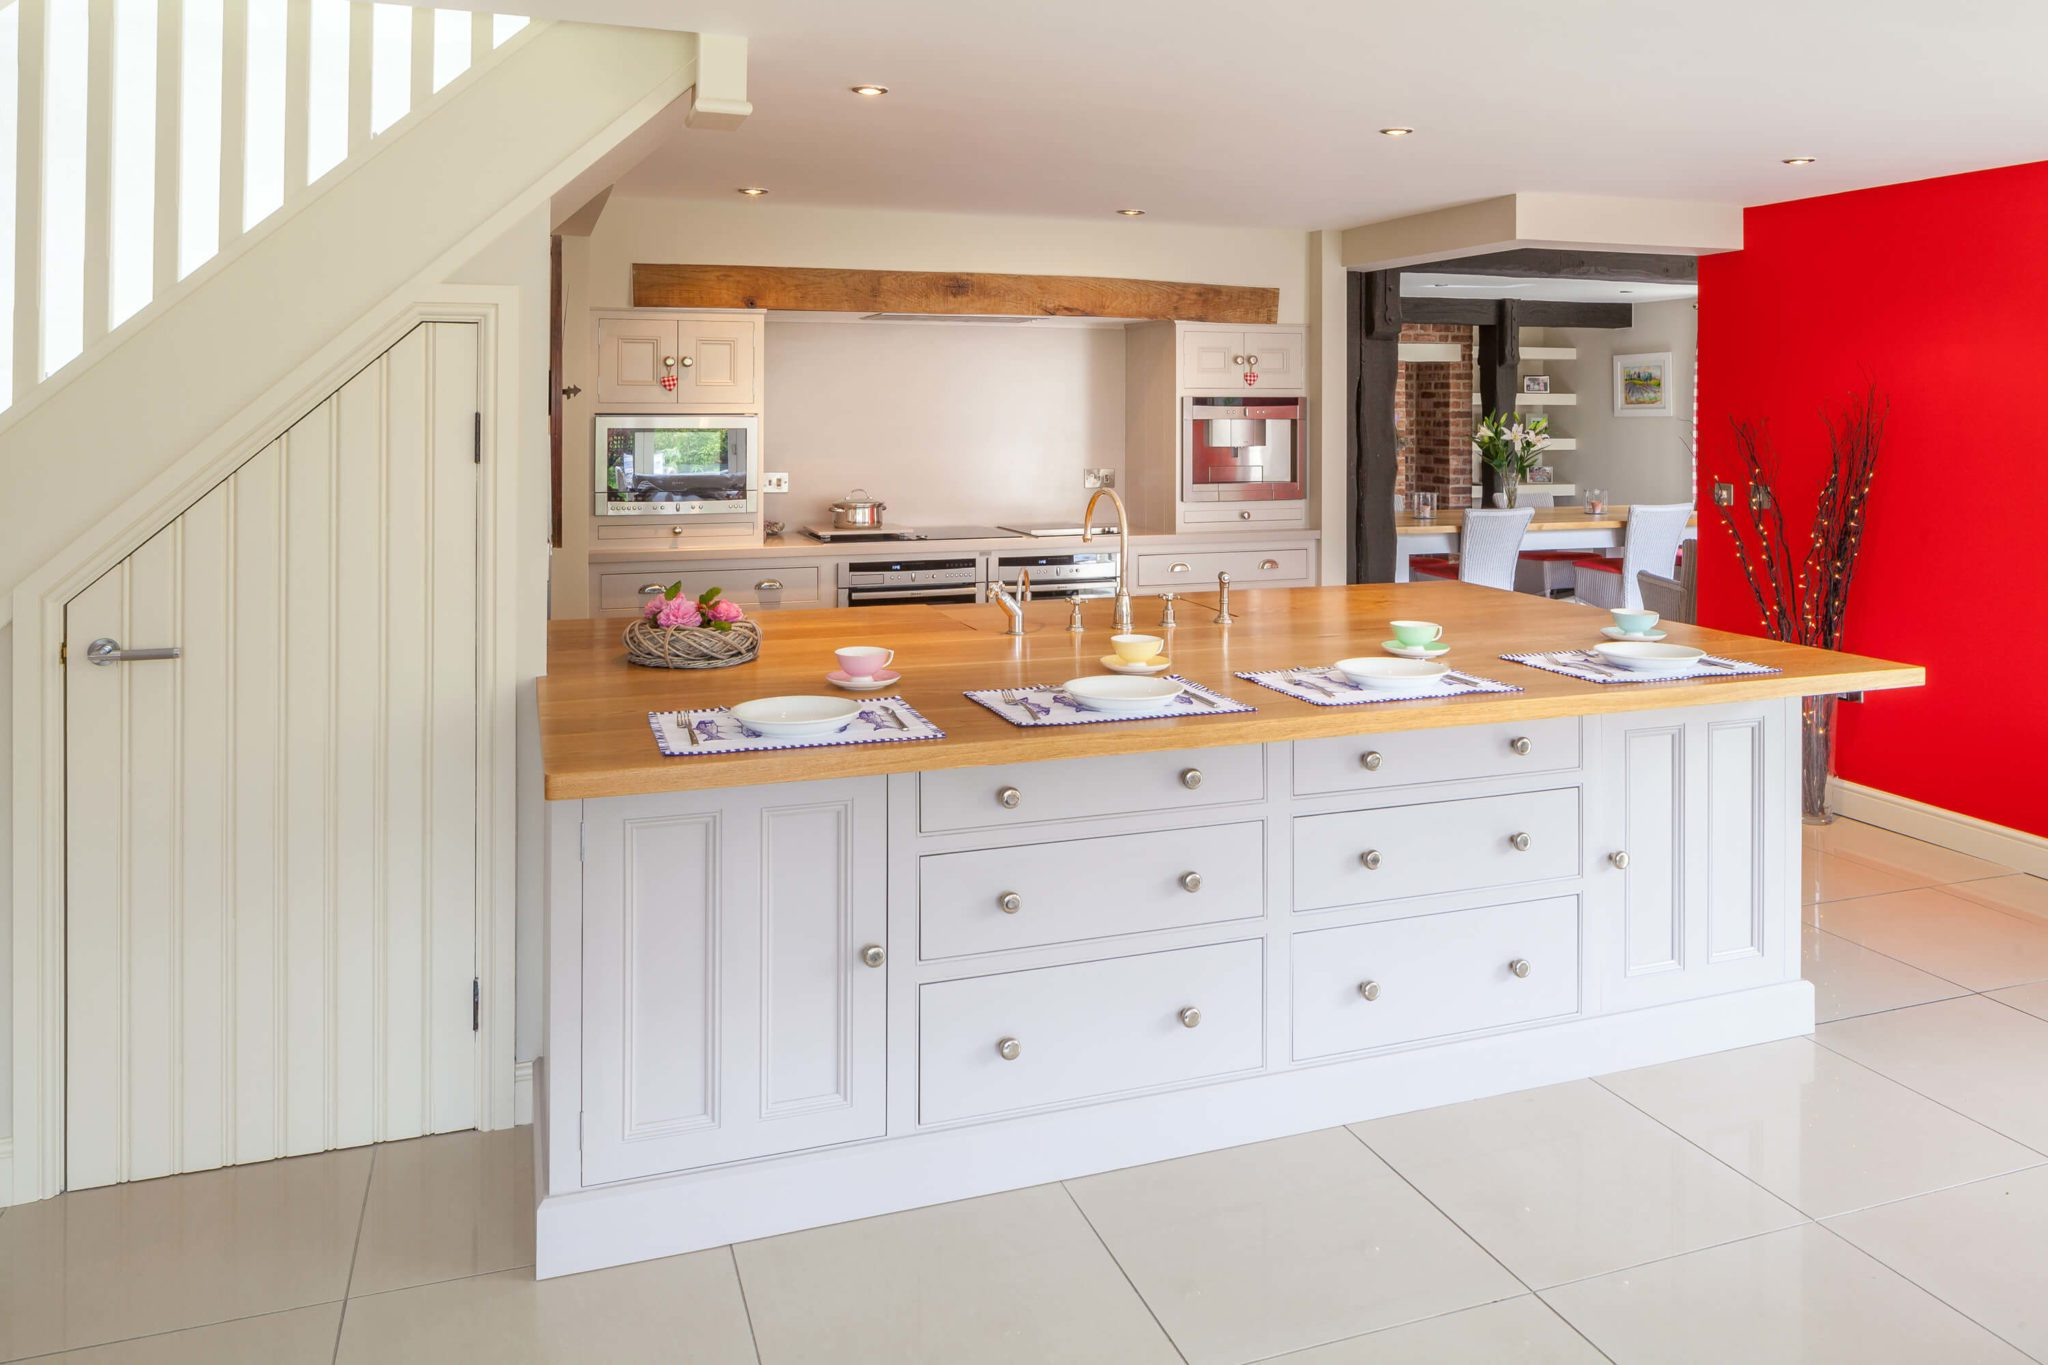 Luxury Kitchen Furniture 3 - Hill Farm Furniture